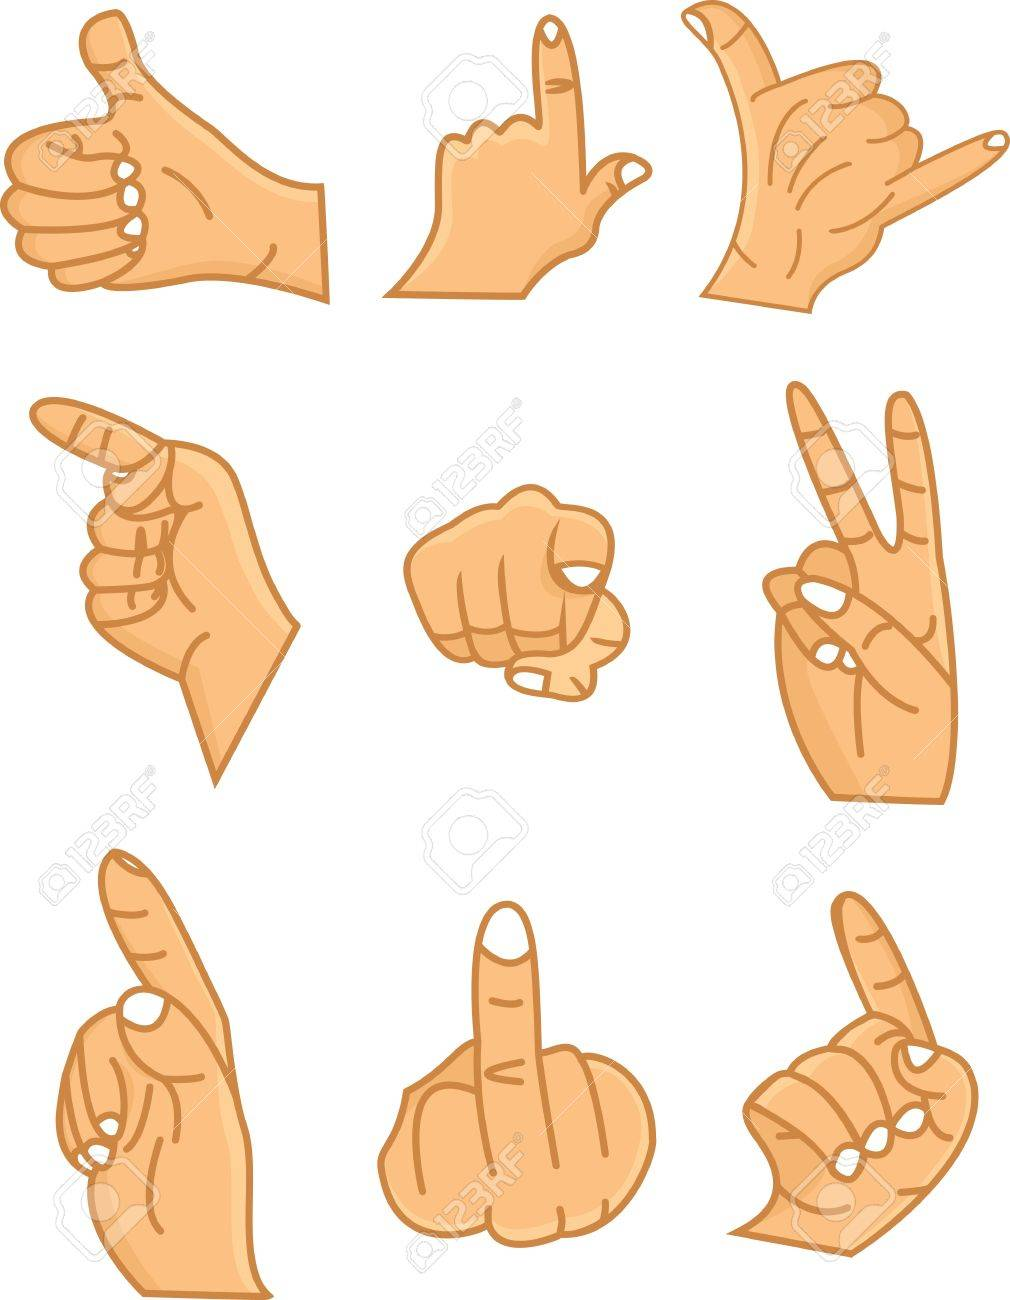 hands collection Stock Vector - 12542597